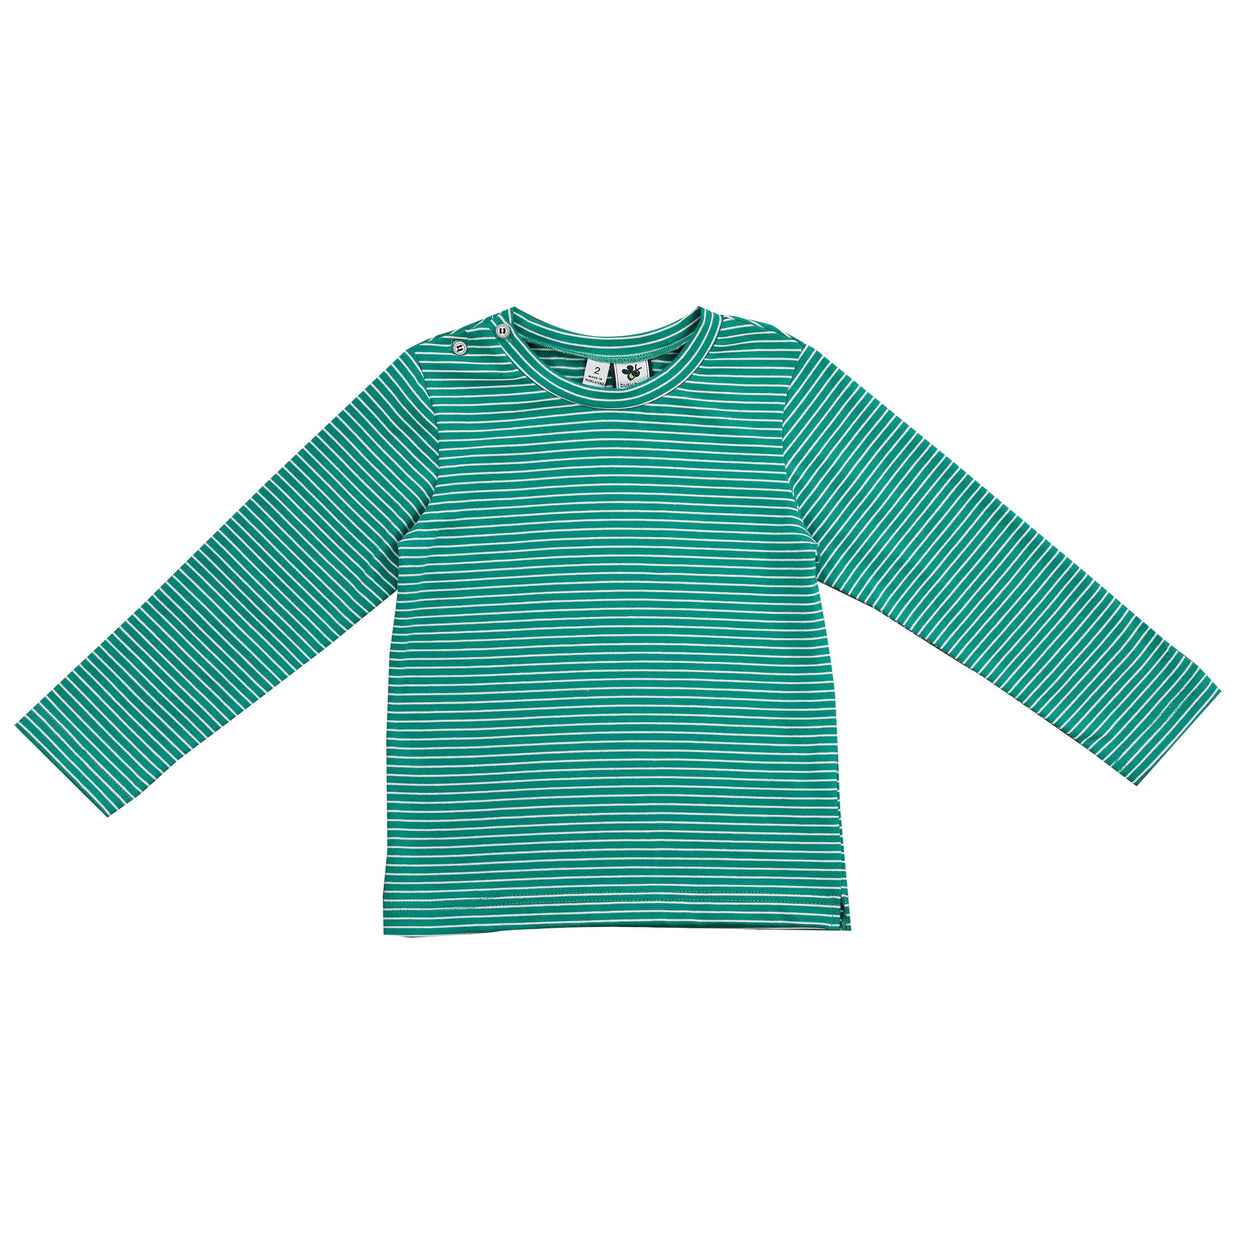 henry boys long sleeve tee green stripe